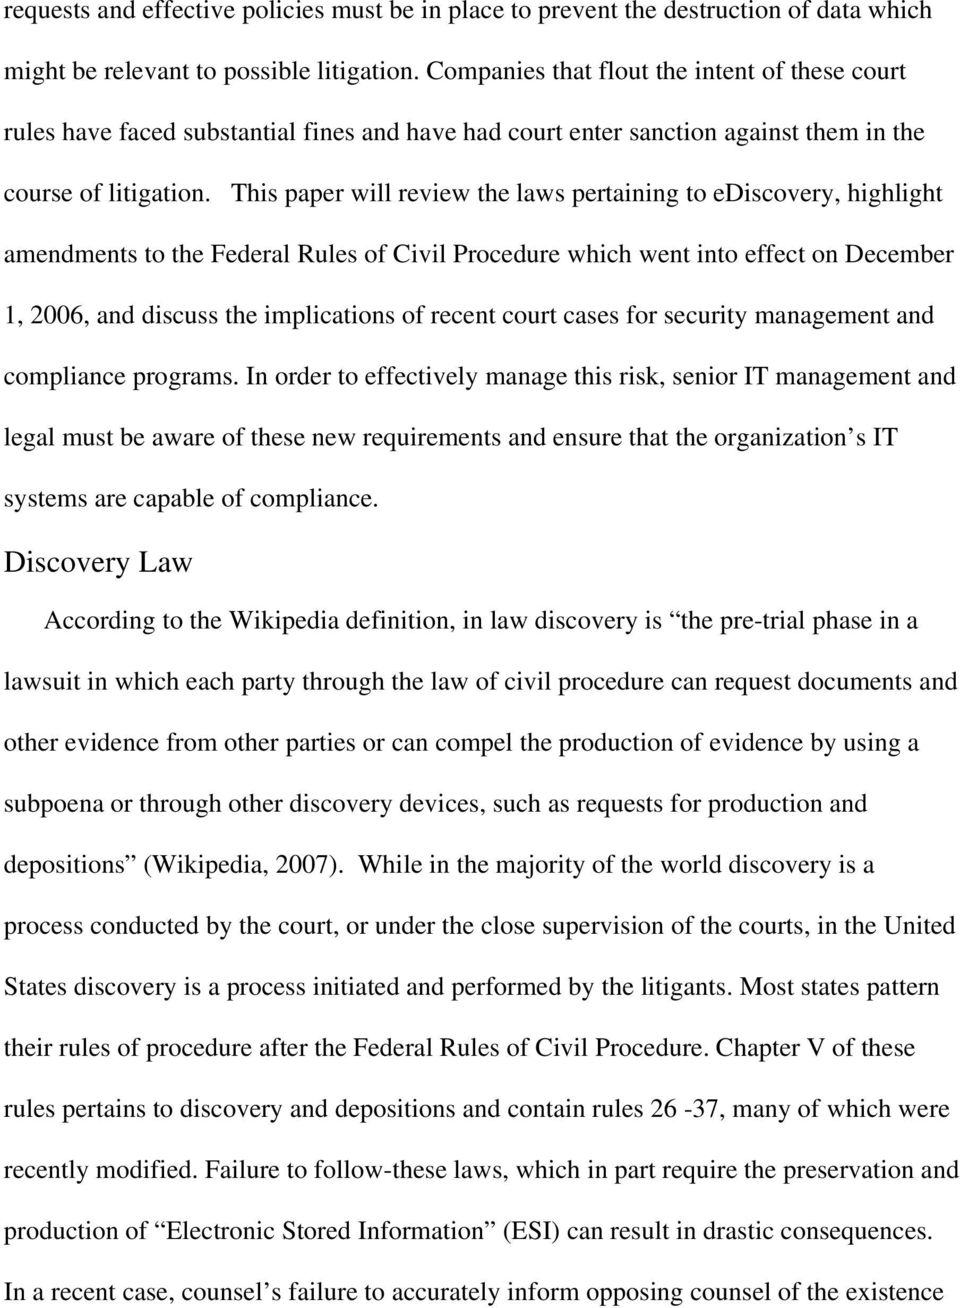 This paper will review the laws pertaining to ediscovery, highlight amendments to the Federal Rules of Civil Procedure which went into effect on December 1, 2006, and discuss the implications of